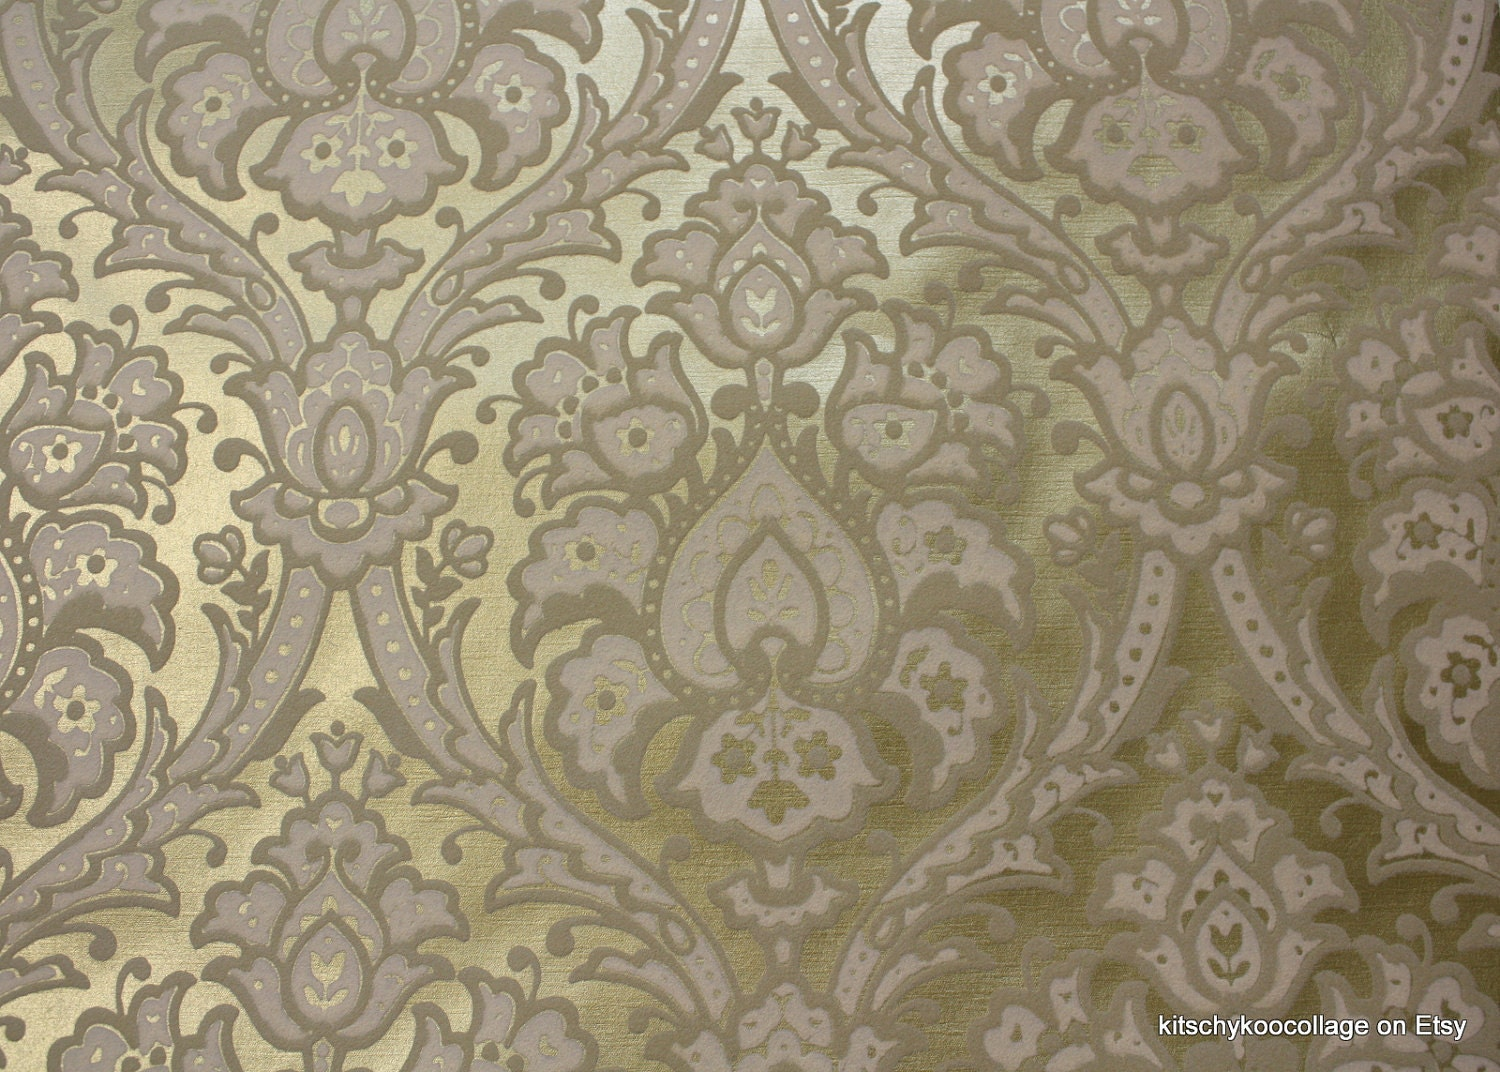 metallic flocked wallpaper